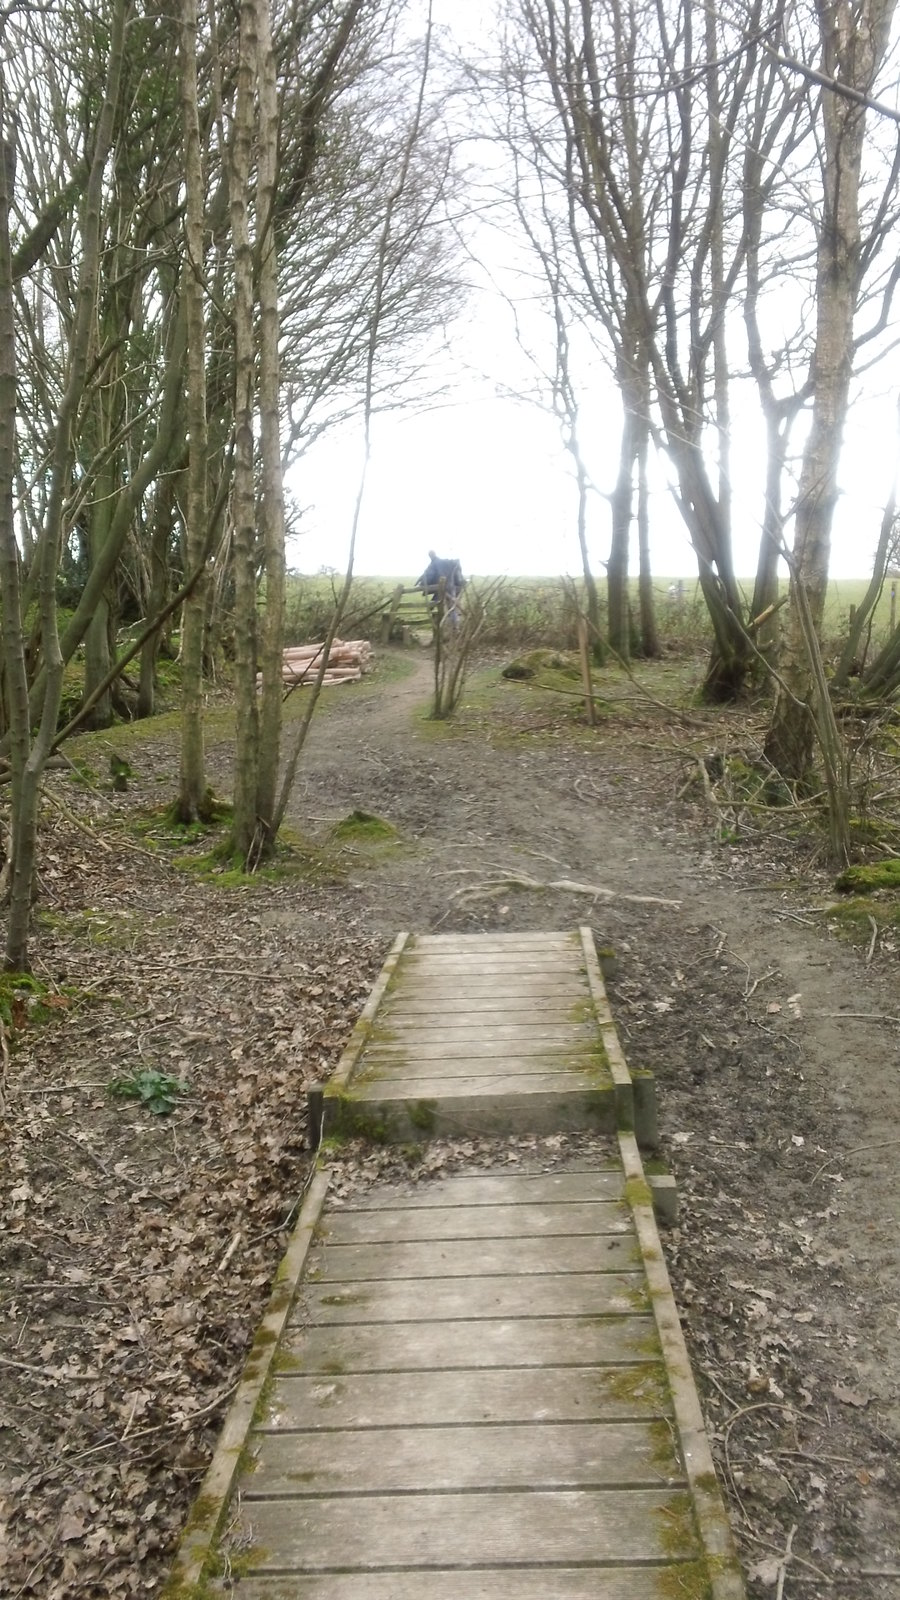 Over the boardwalk, over the stile